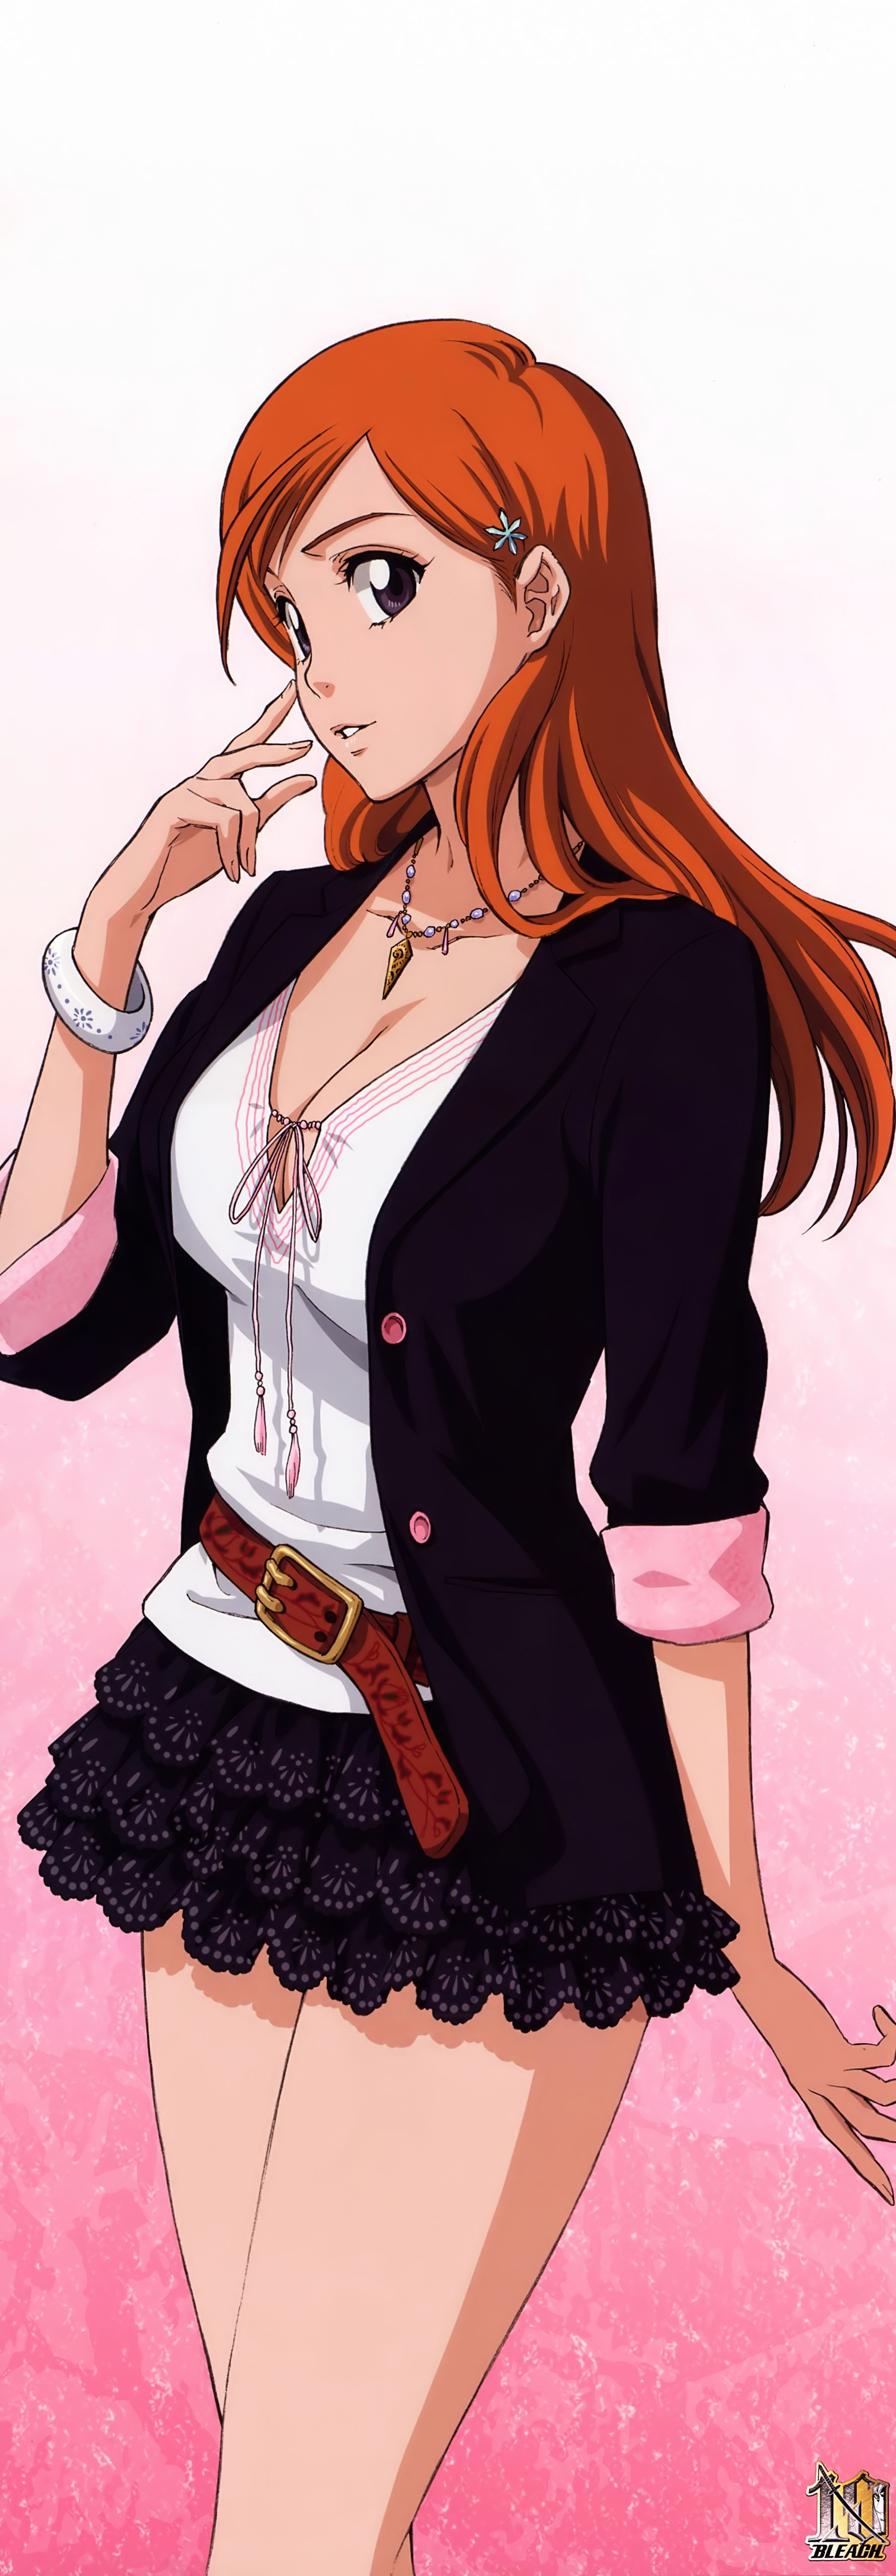 Orihime Inoue She Had The Biggest Boobs In All Of Anime I Swear